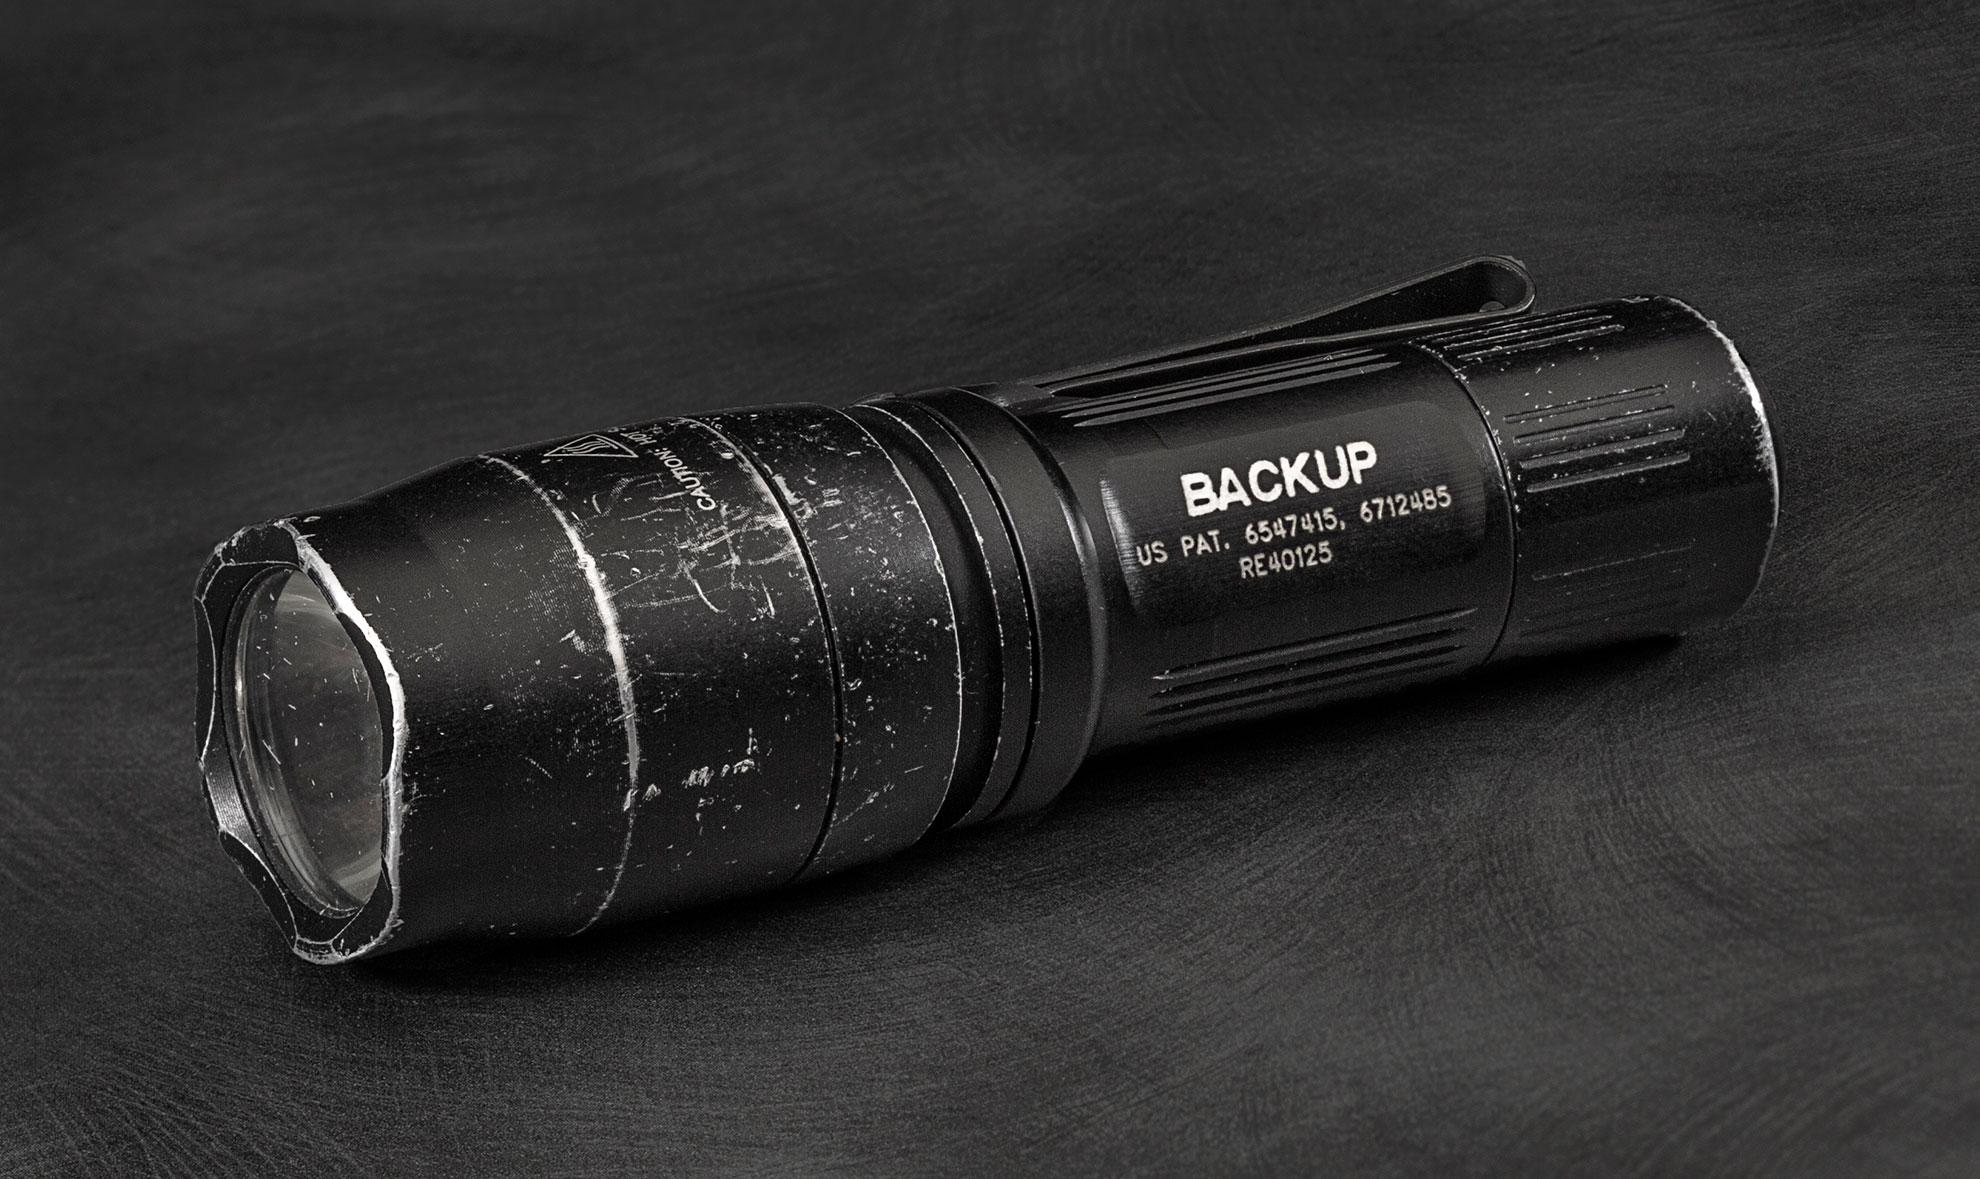 SureFire E1B Backup flashlight